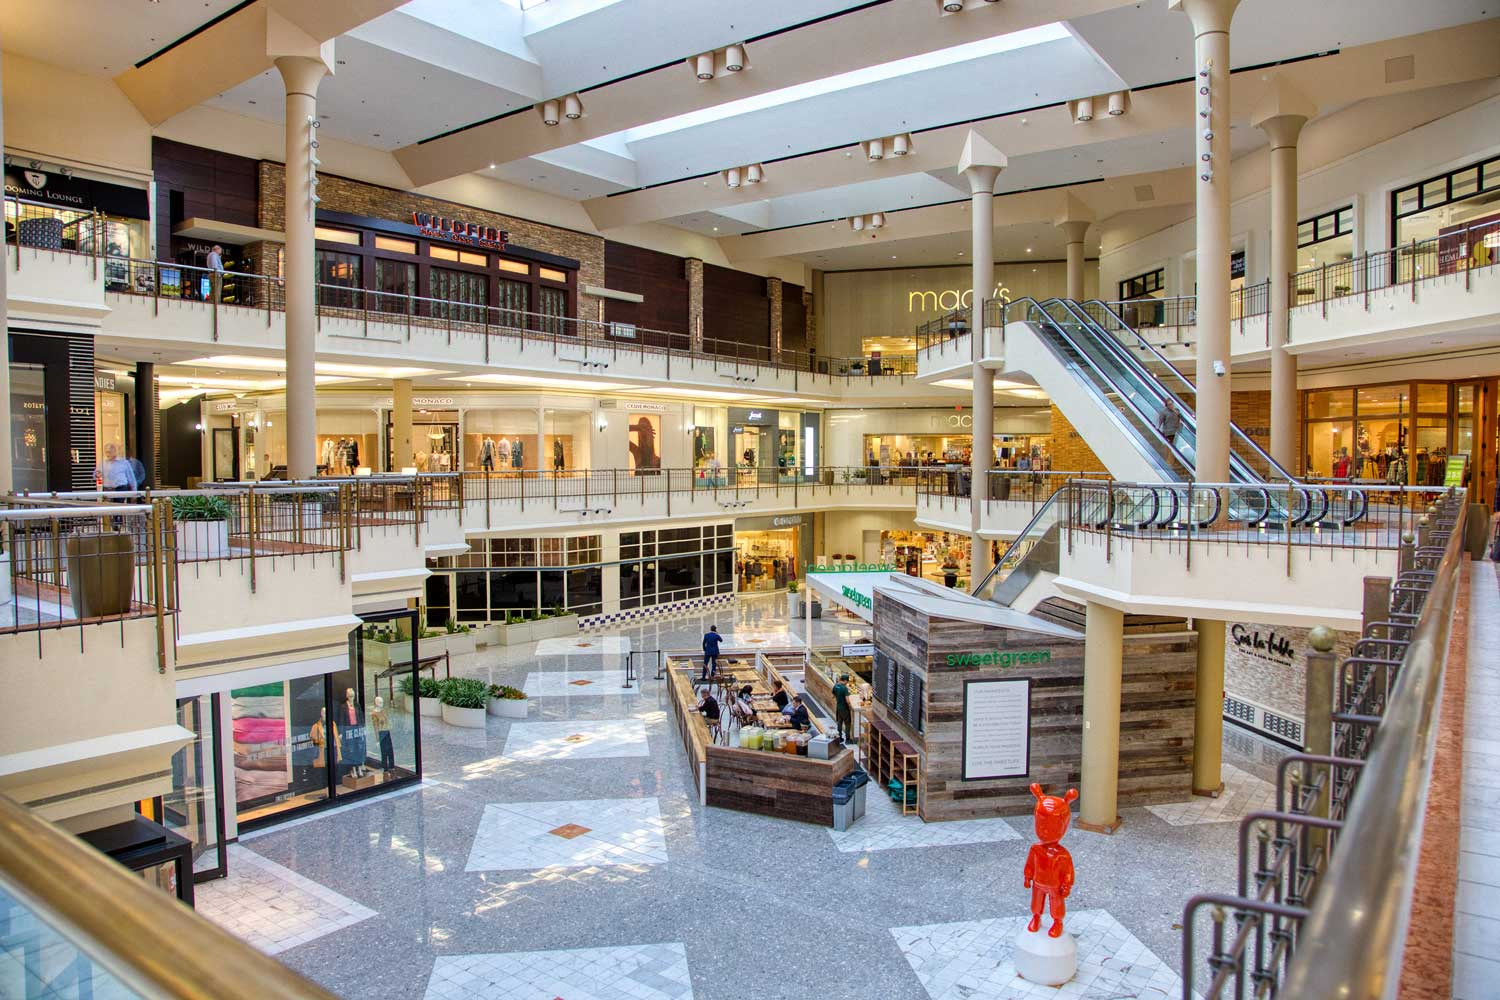 15 minutes to Tysons Corner Center and Tysons Galleria